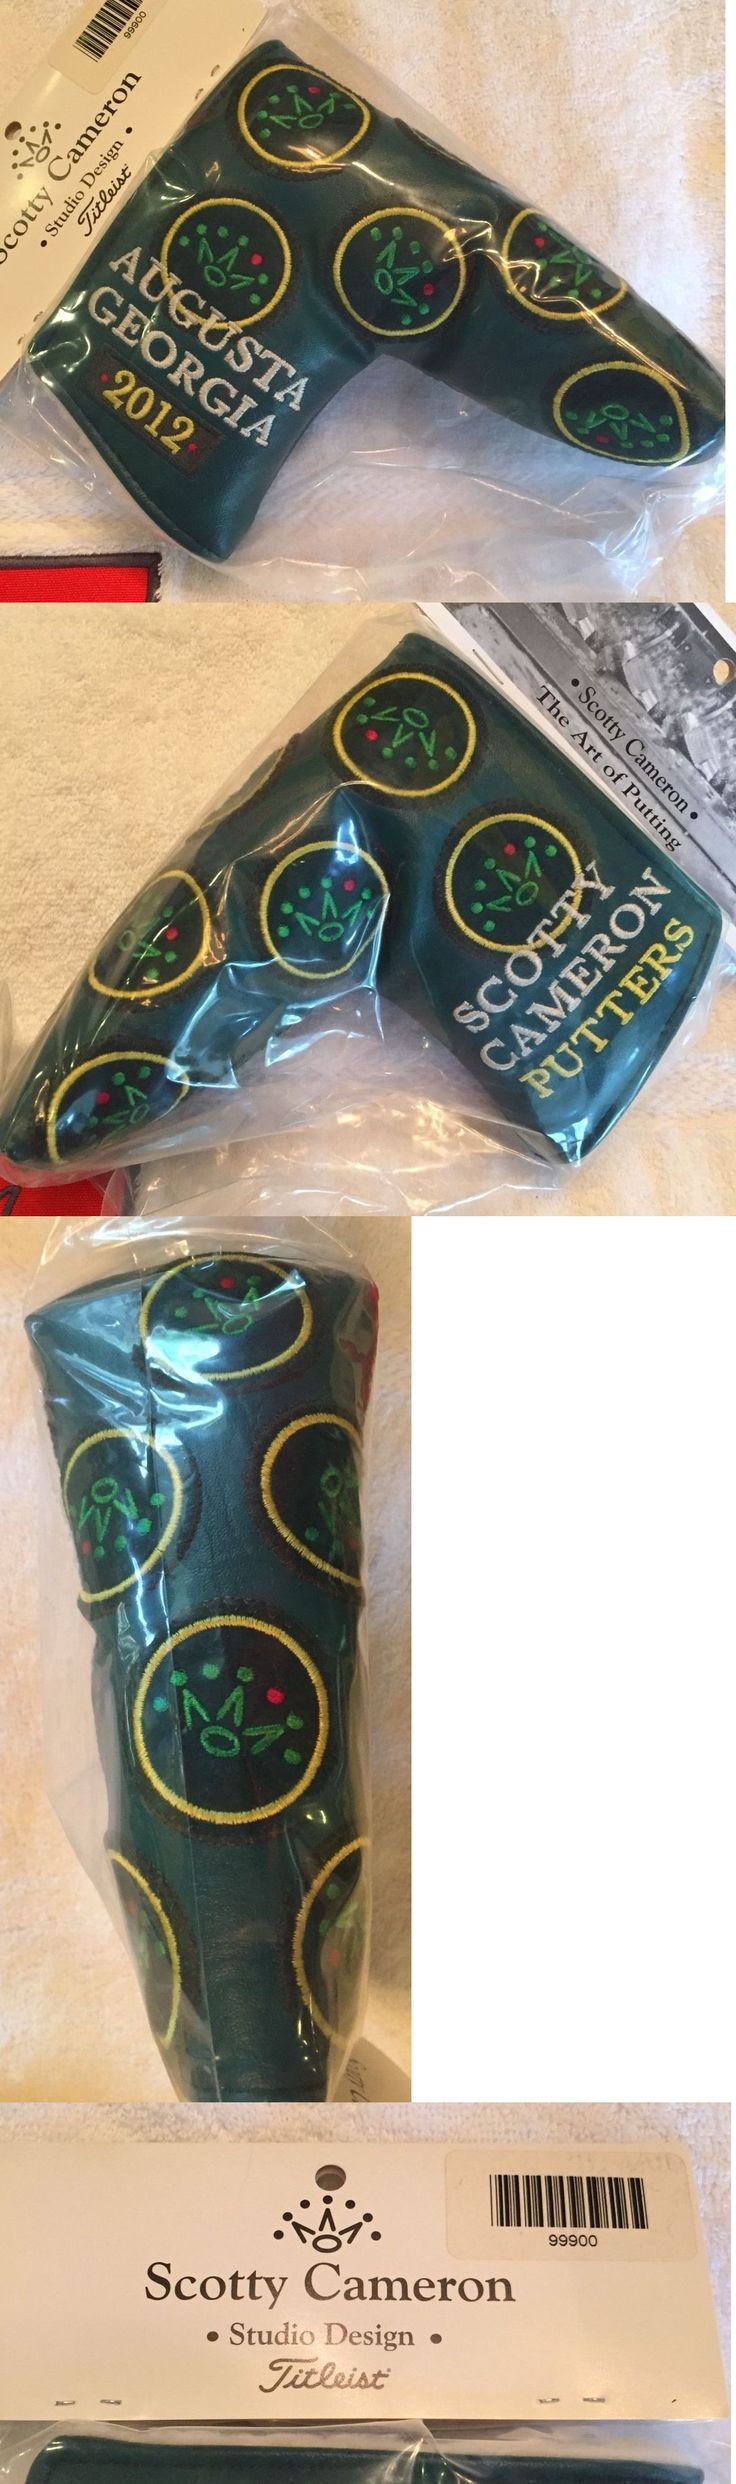 Club Head Covers 18930: Scotty Cameron 2012 Masters Dancing Crowns Green Augusta Georgia Putter Cover -> BUY IT NOW ONLY: $129.0 on eBay!